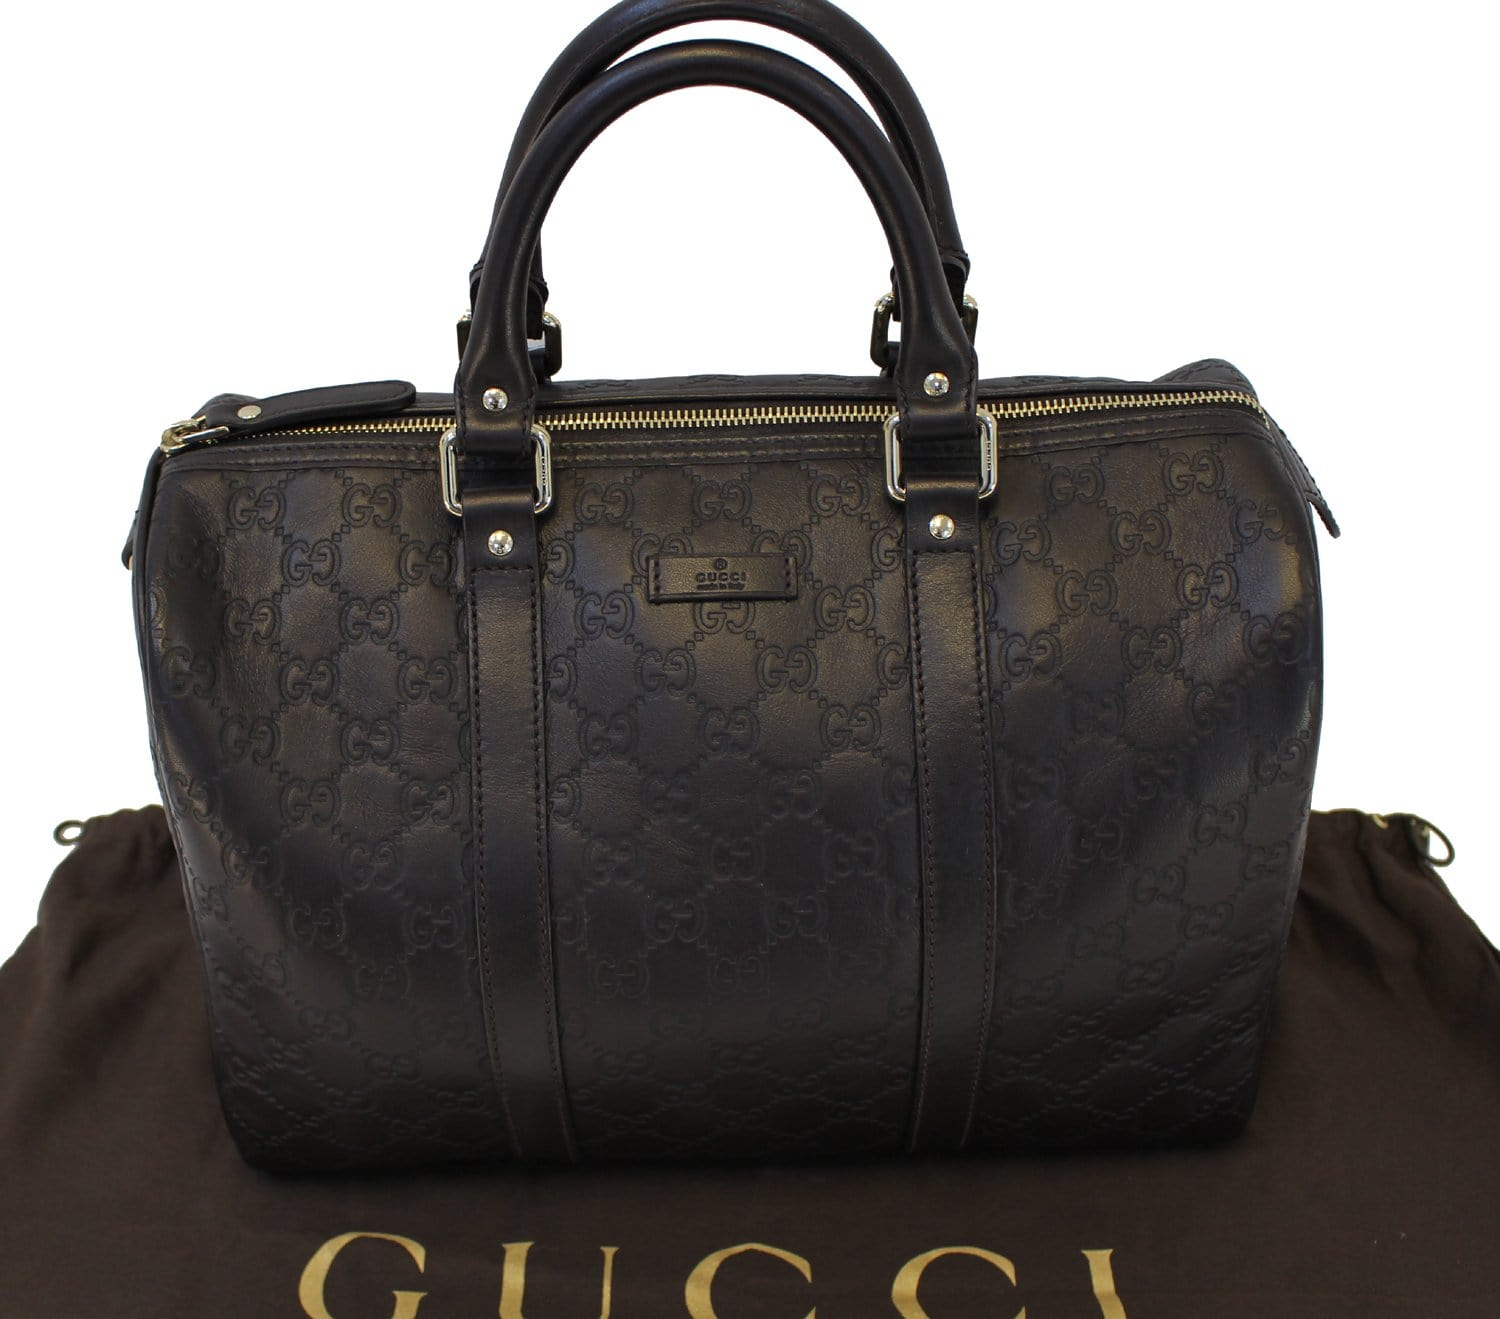 888a62002f6a Authentic GUCCI 265697 GG Guccissima Leather Chocolate Boston Bag TT15